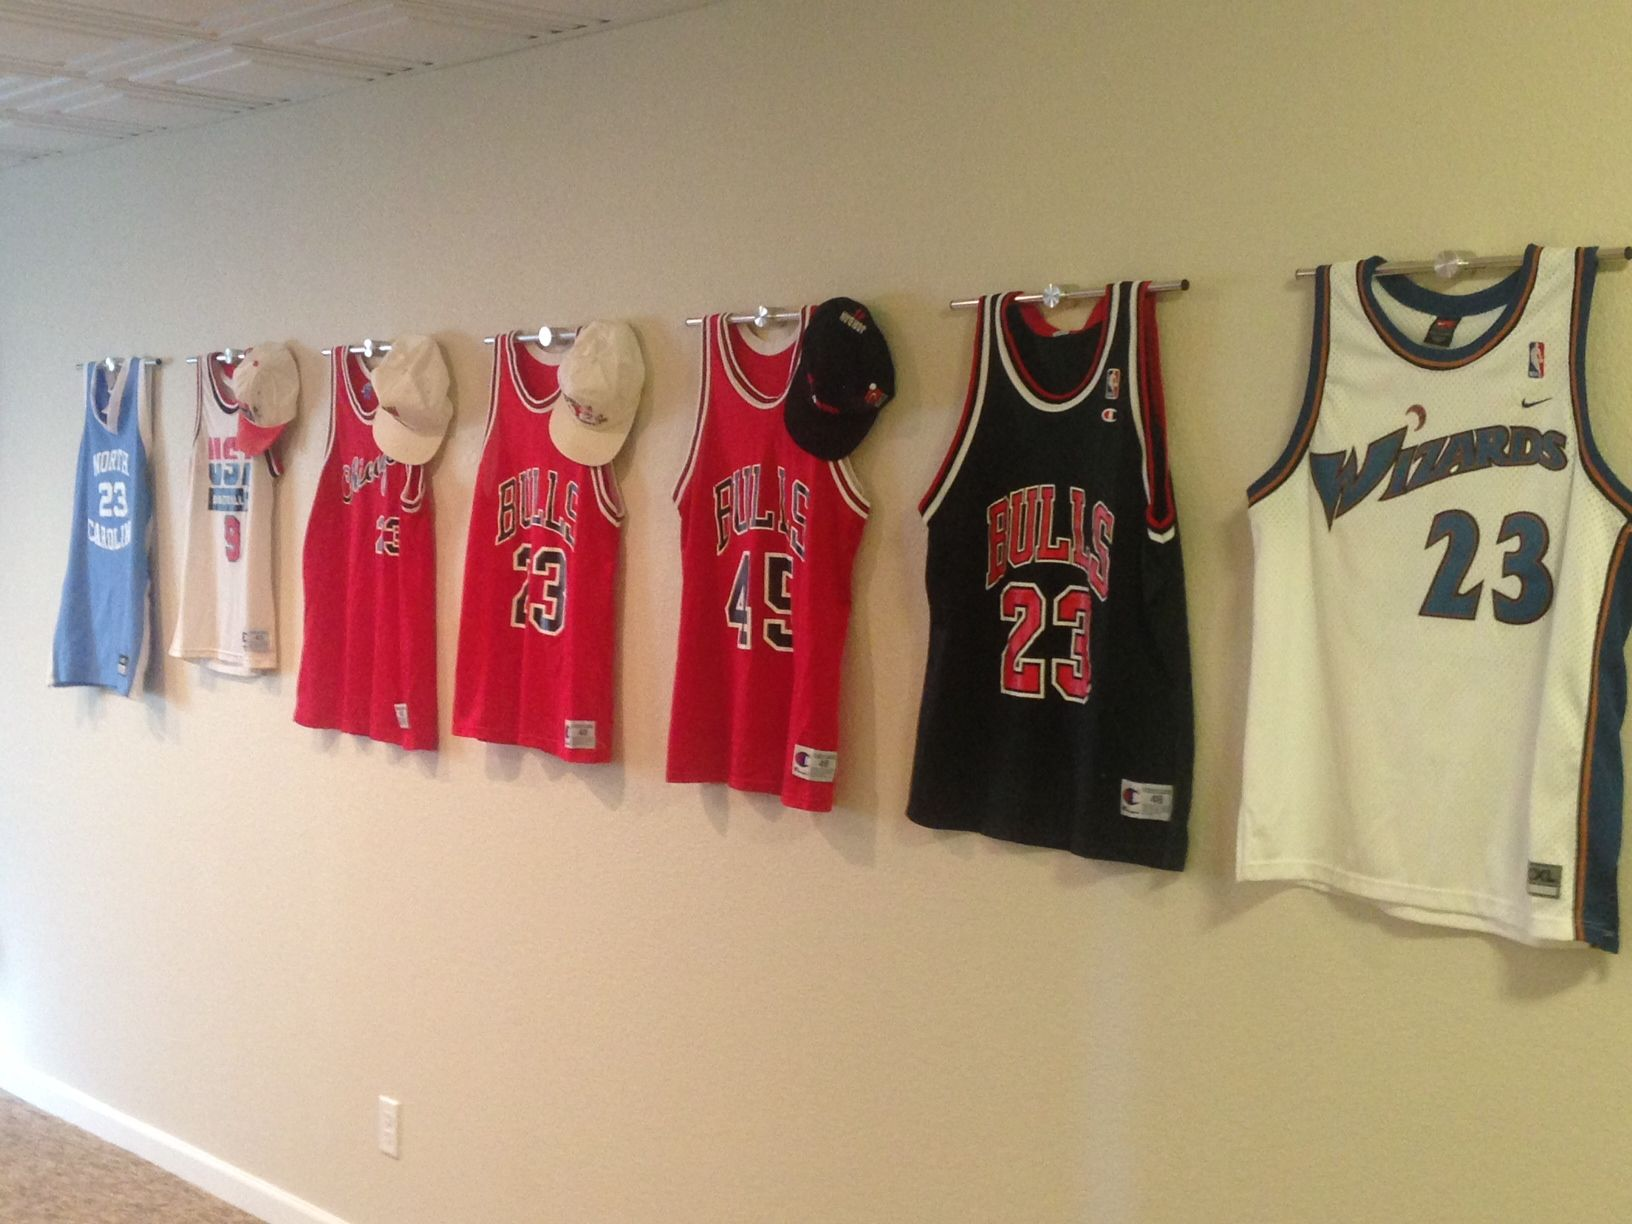 Najarian Nba Youth Bedroom In A Box: Complete Jordan Wall Of Fame Costing Only